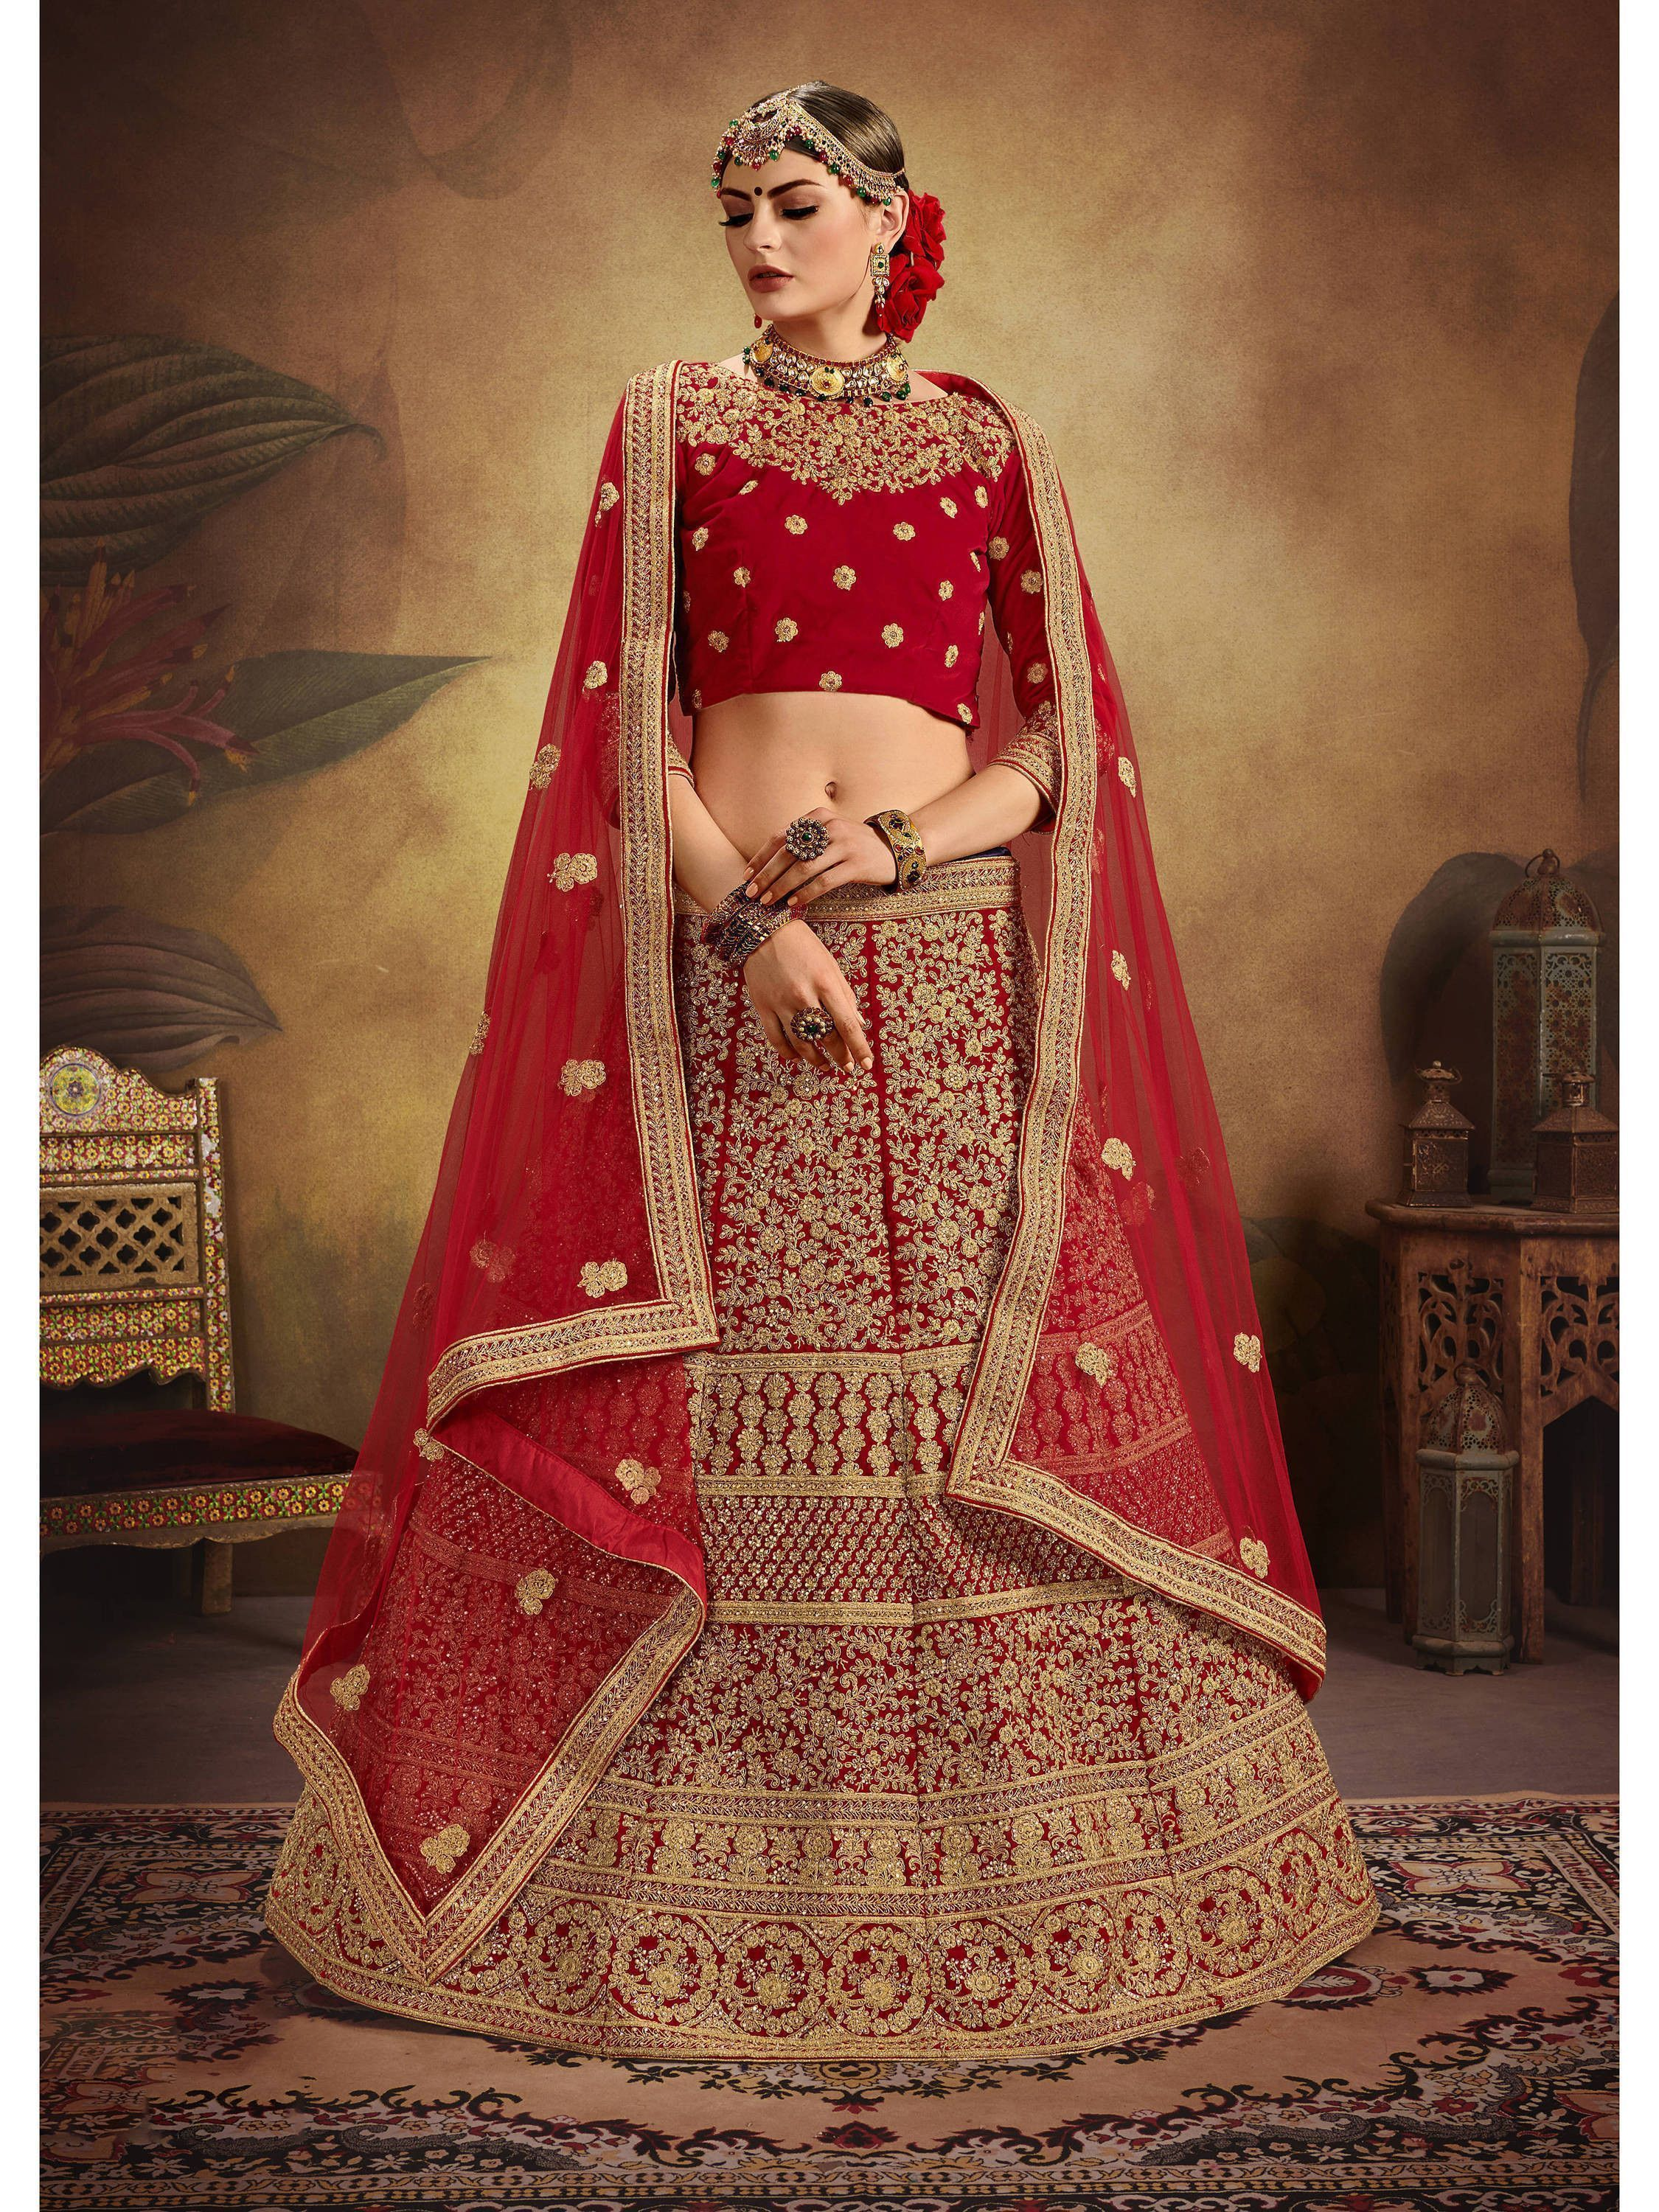 Buy Red Sequins Embroidered Velvet Bridal Lehenga Choli With Dupatta Online From Ethnicplus For 11 849 00